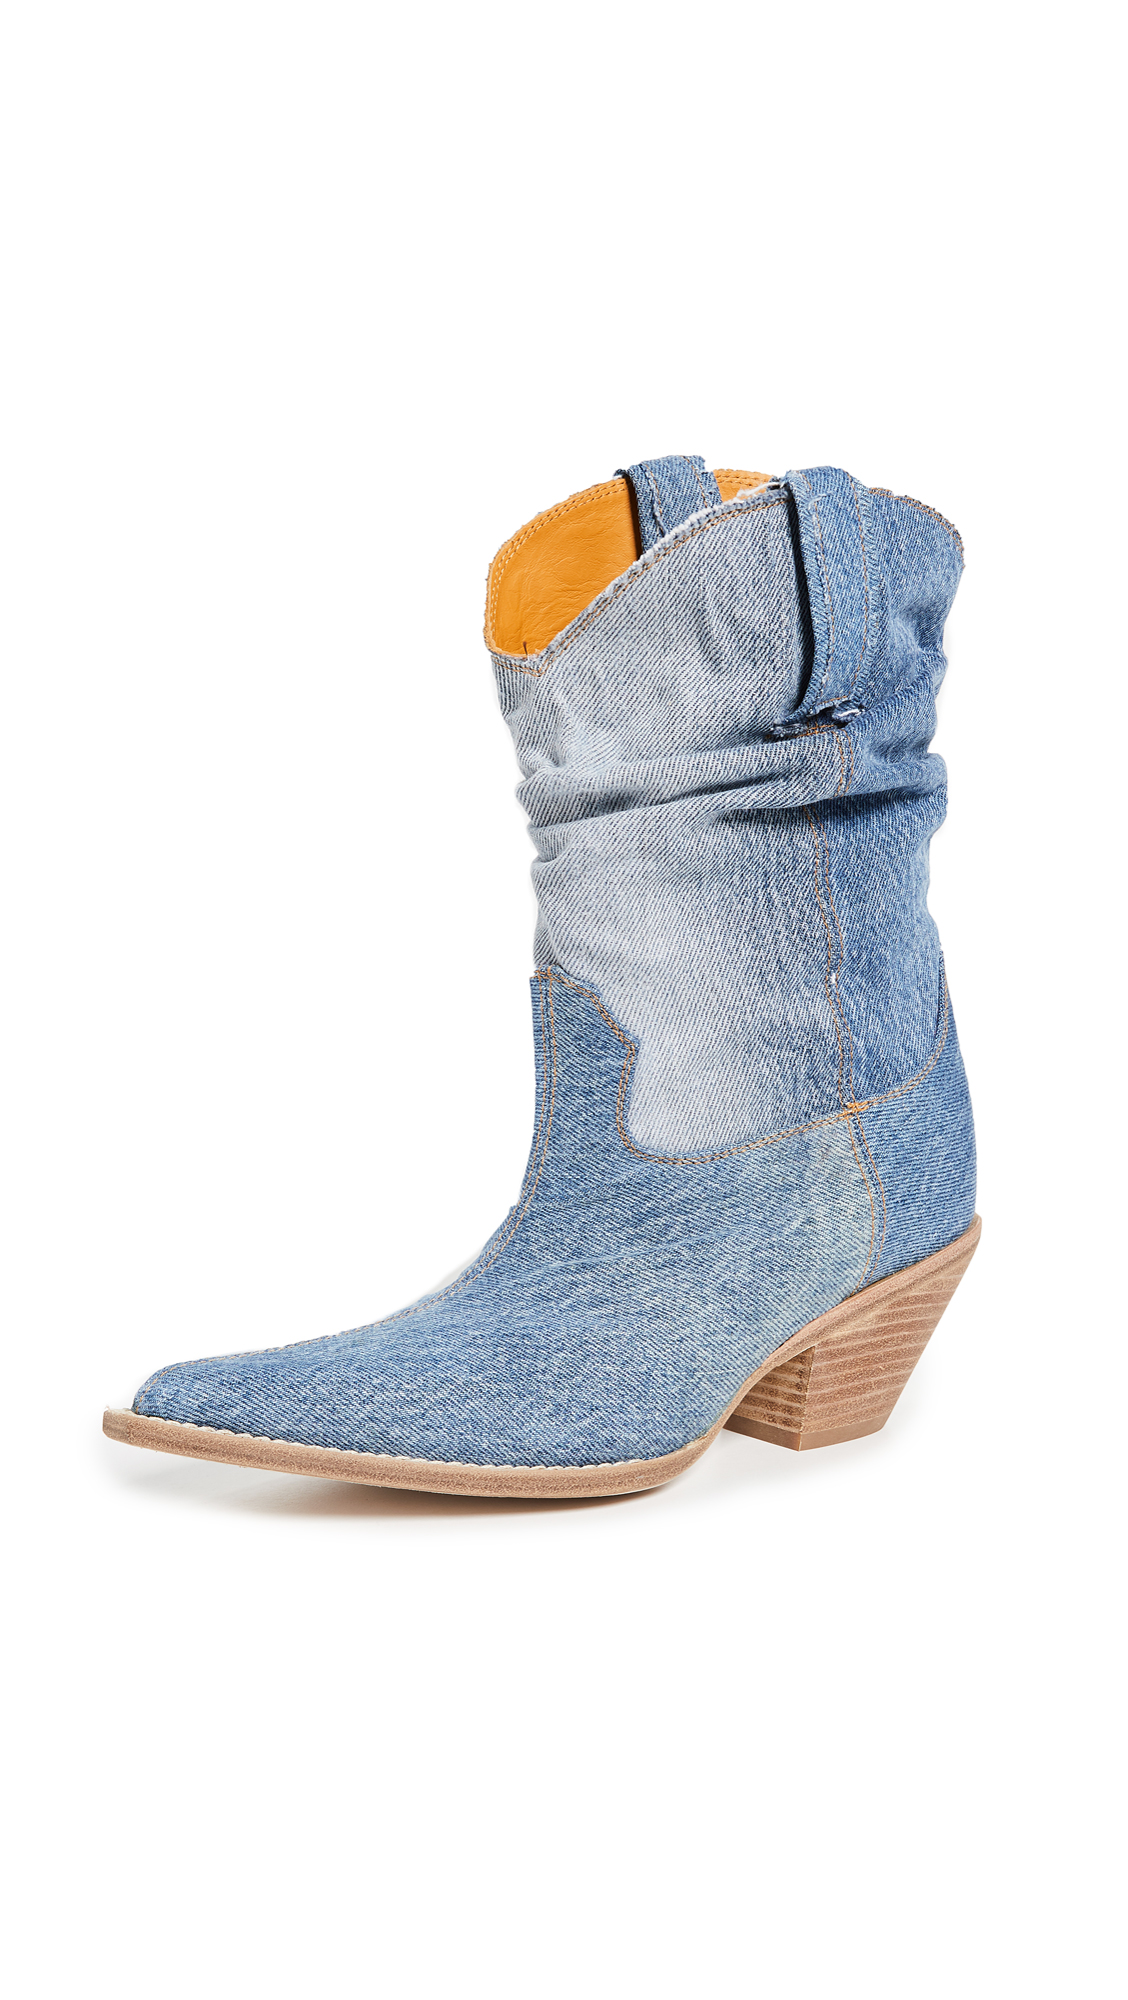 R13 Low Crunch Cowboy Boots - Blue Denim